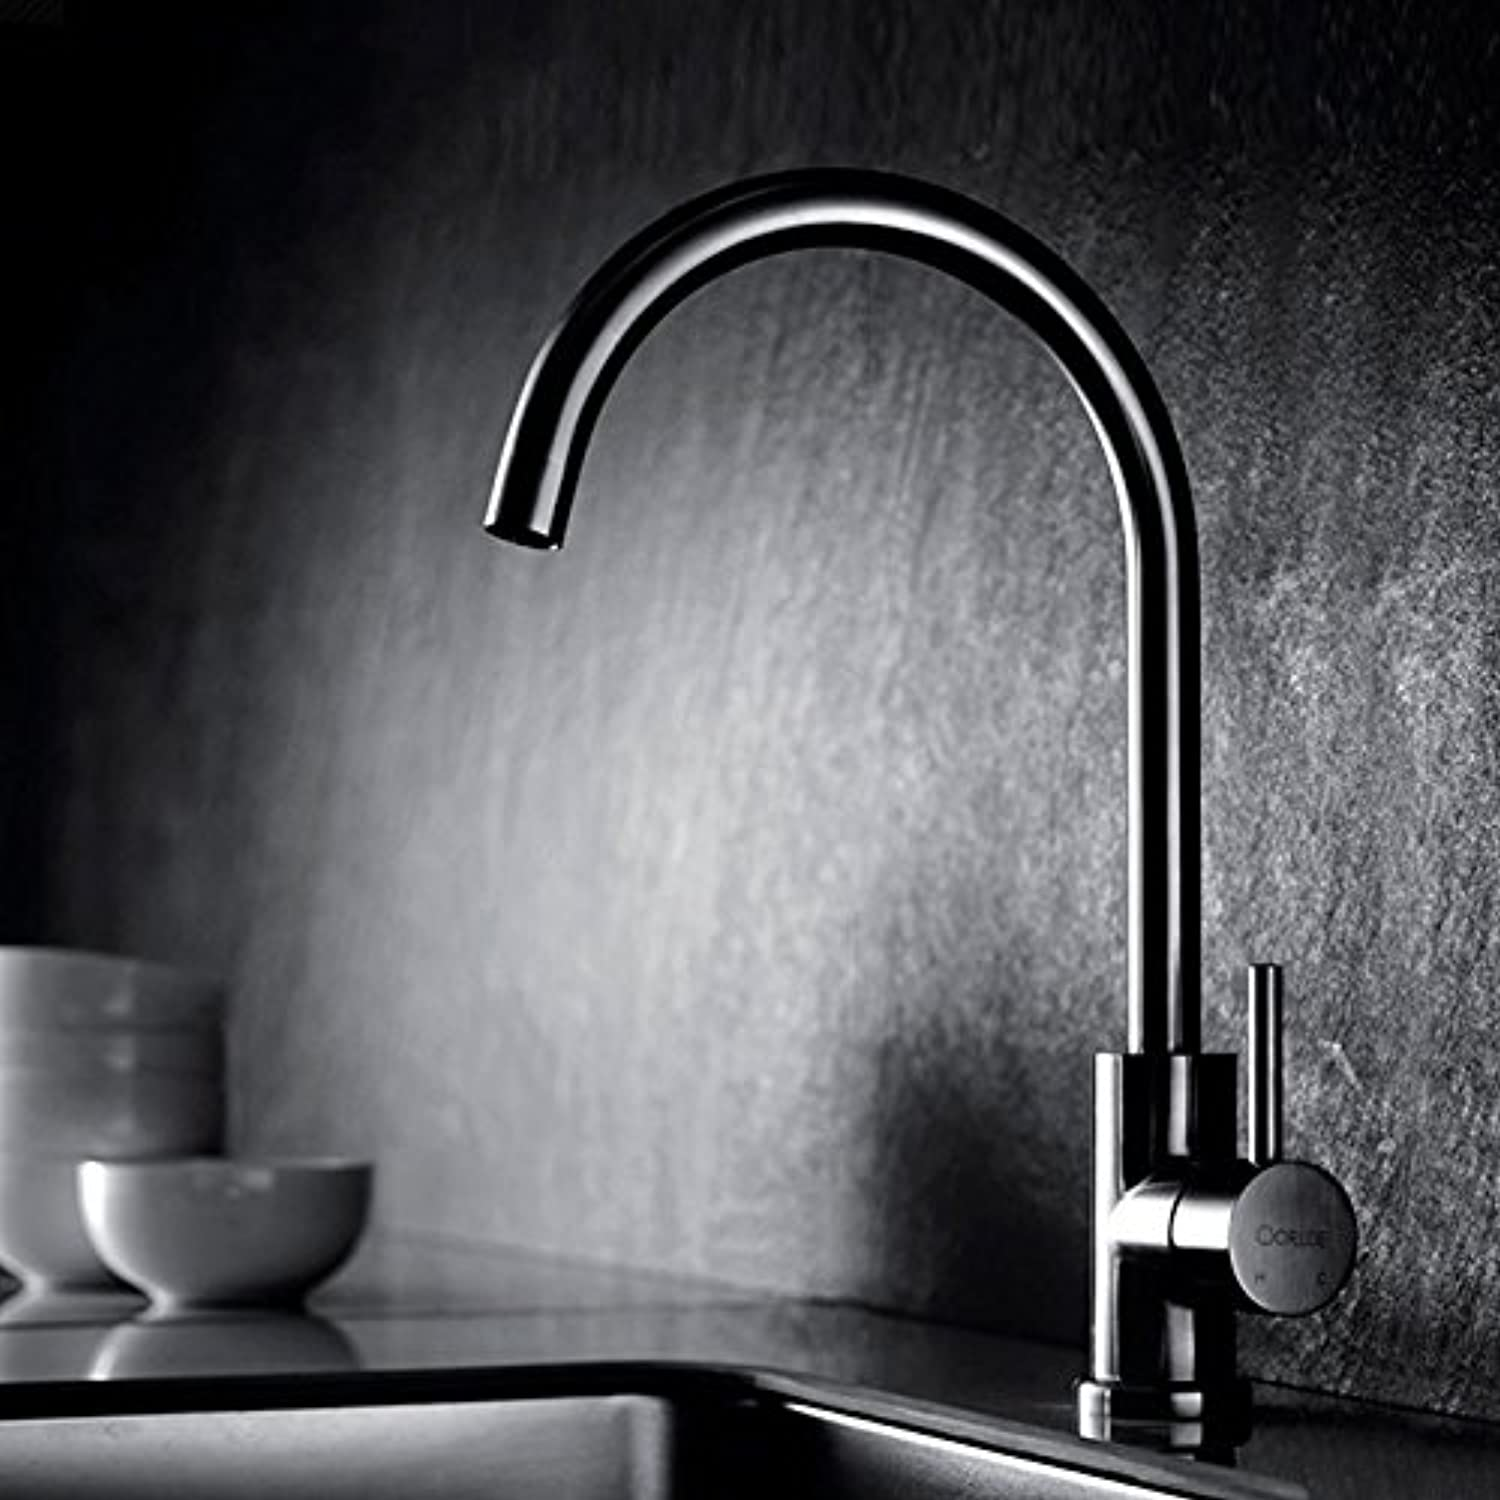 Commercial Single Lever Pull Down Kitchen Sink Faucet Brass Constructed Polished Sink Faucet Kitchen Stainless Steel Kitchen Sink Sink Faucet redatable Lead-Free Hot and Cold Water Faucet